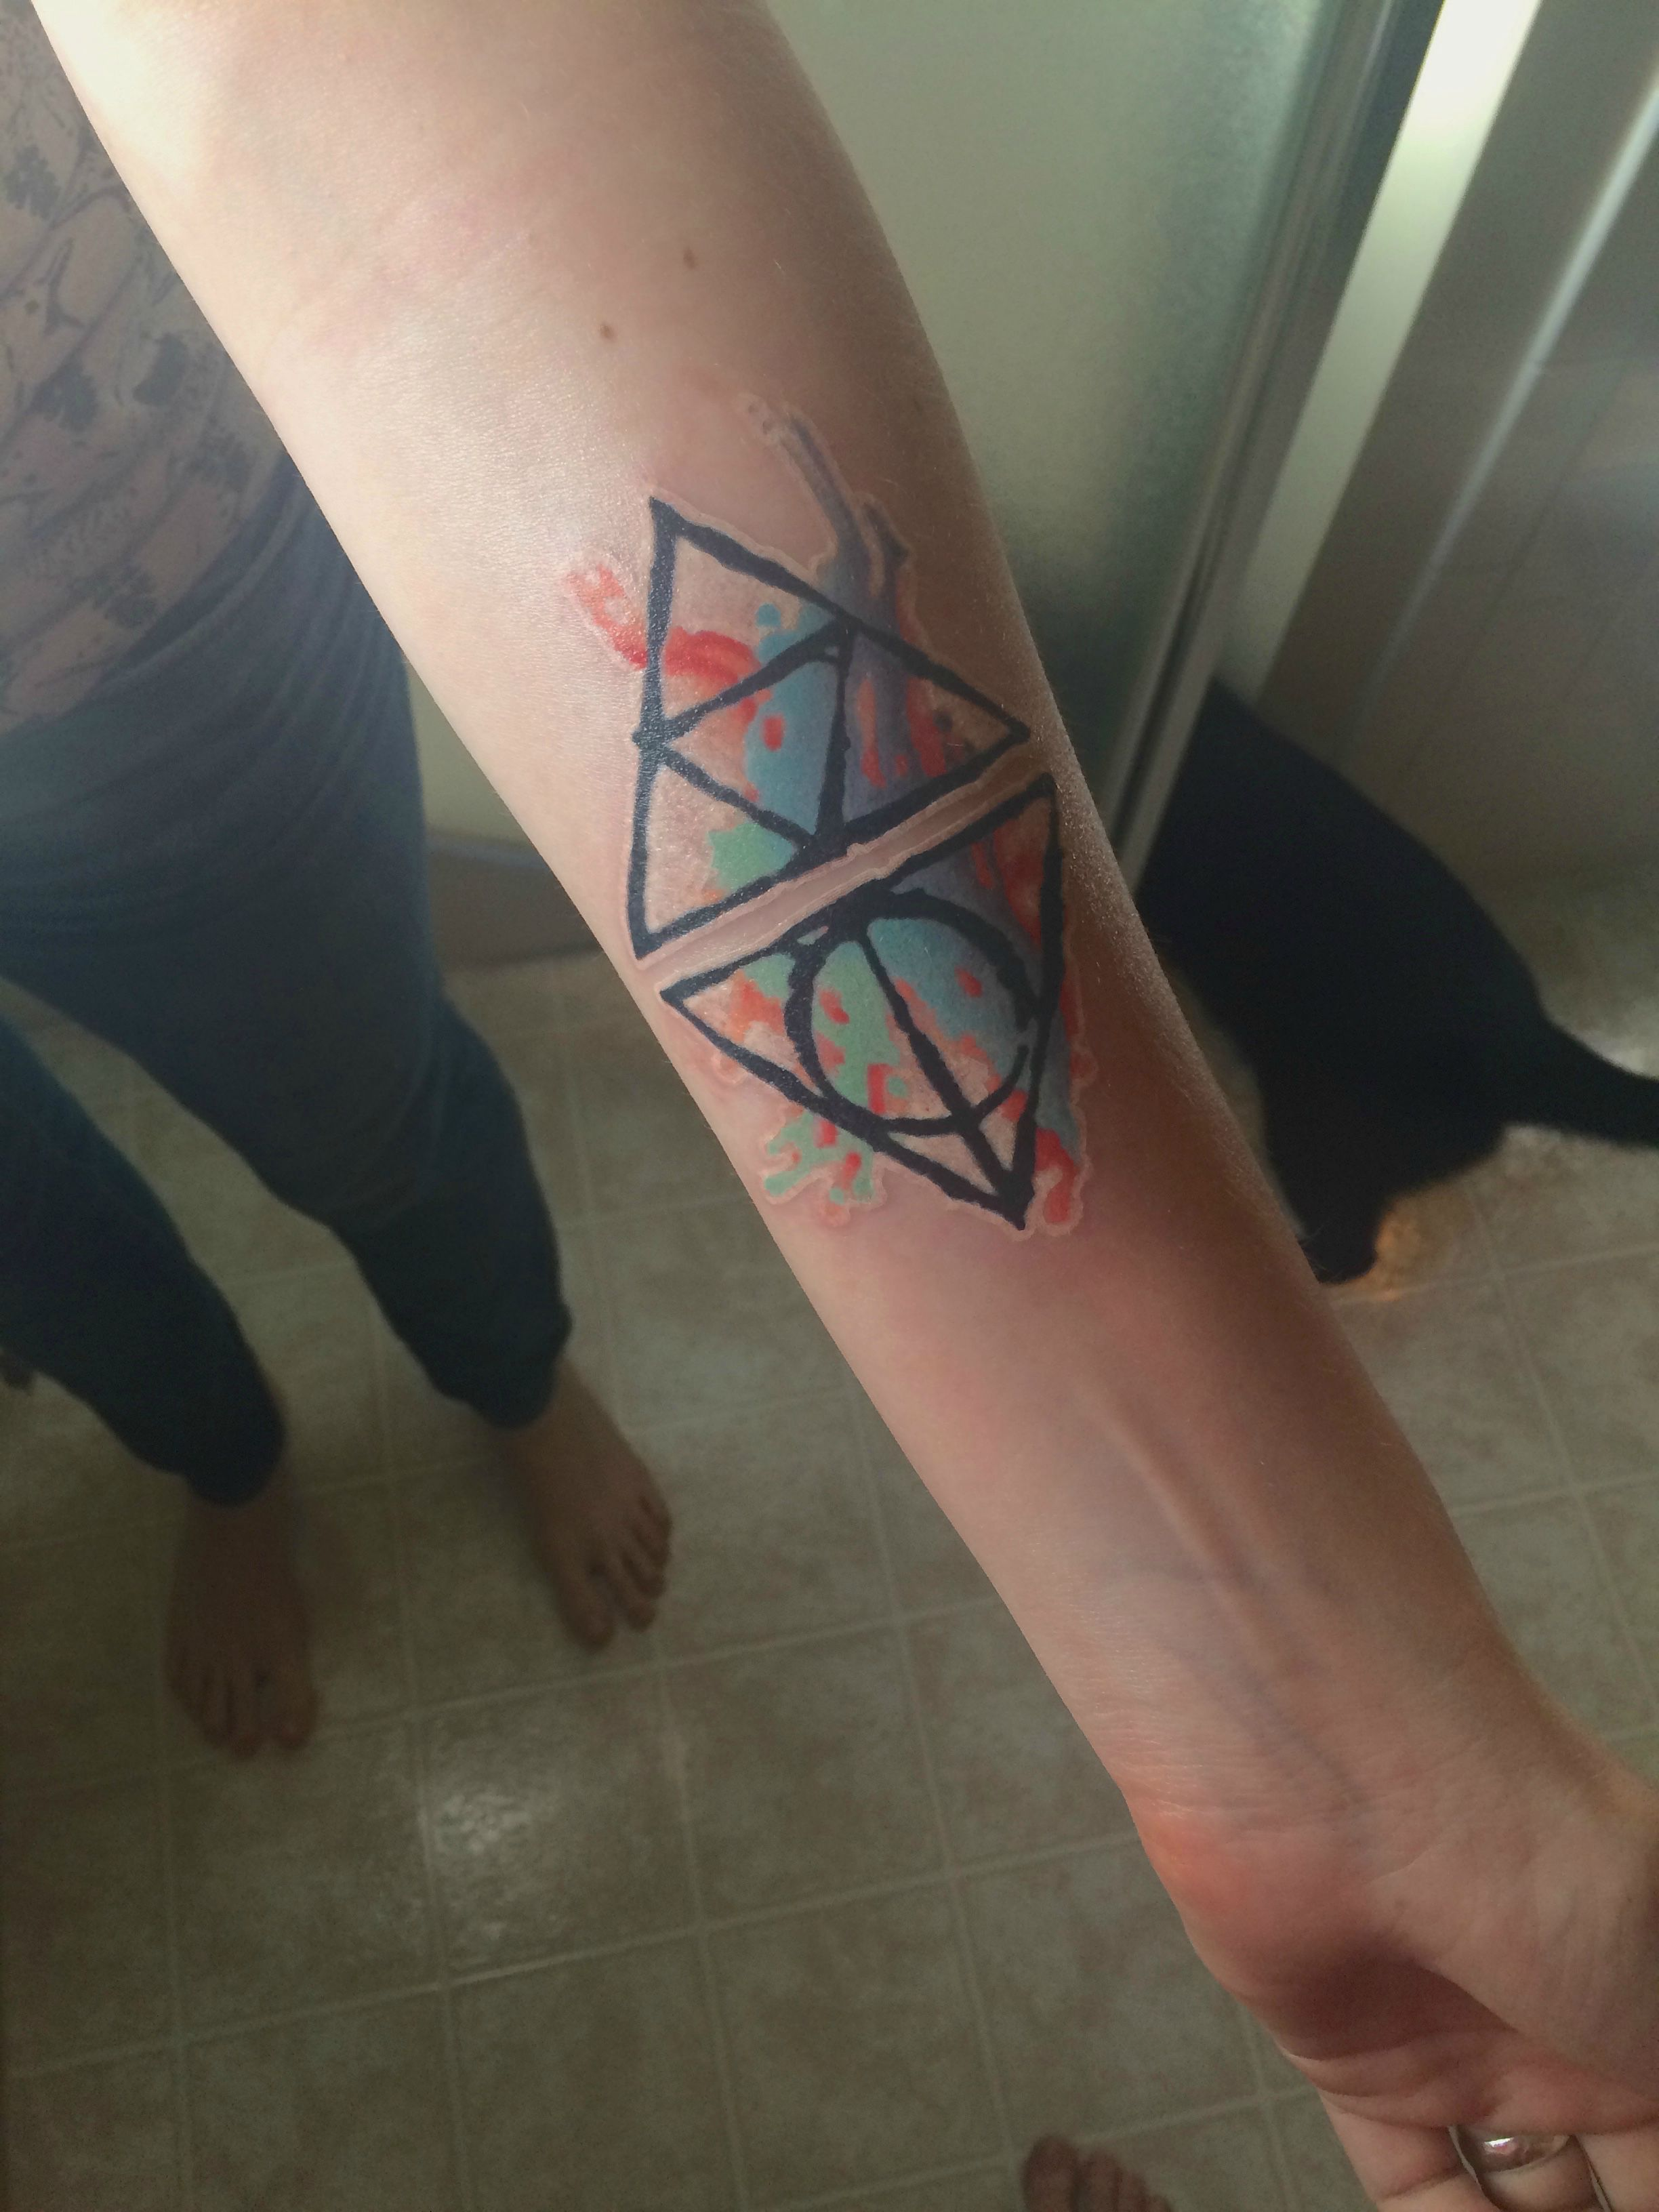 Ly Hallows Triforce Tattoo By Kenny Jack Browns Tattoo Revival In Fredericksburg